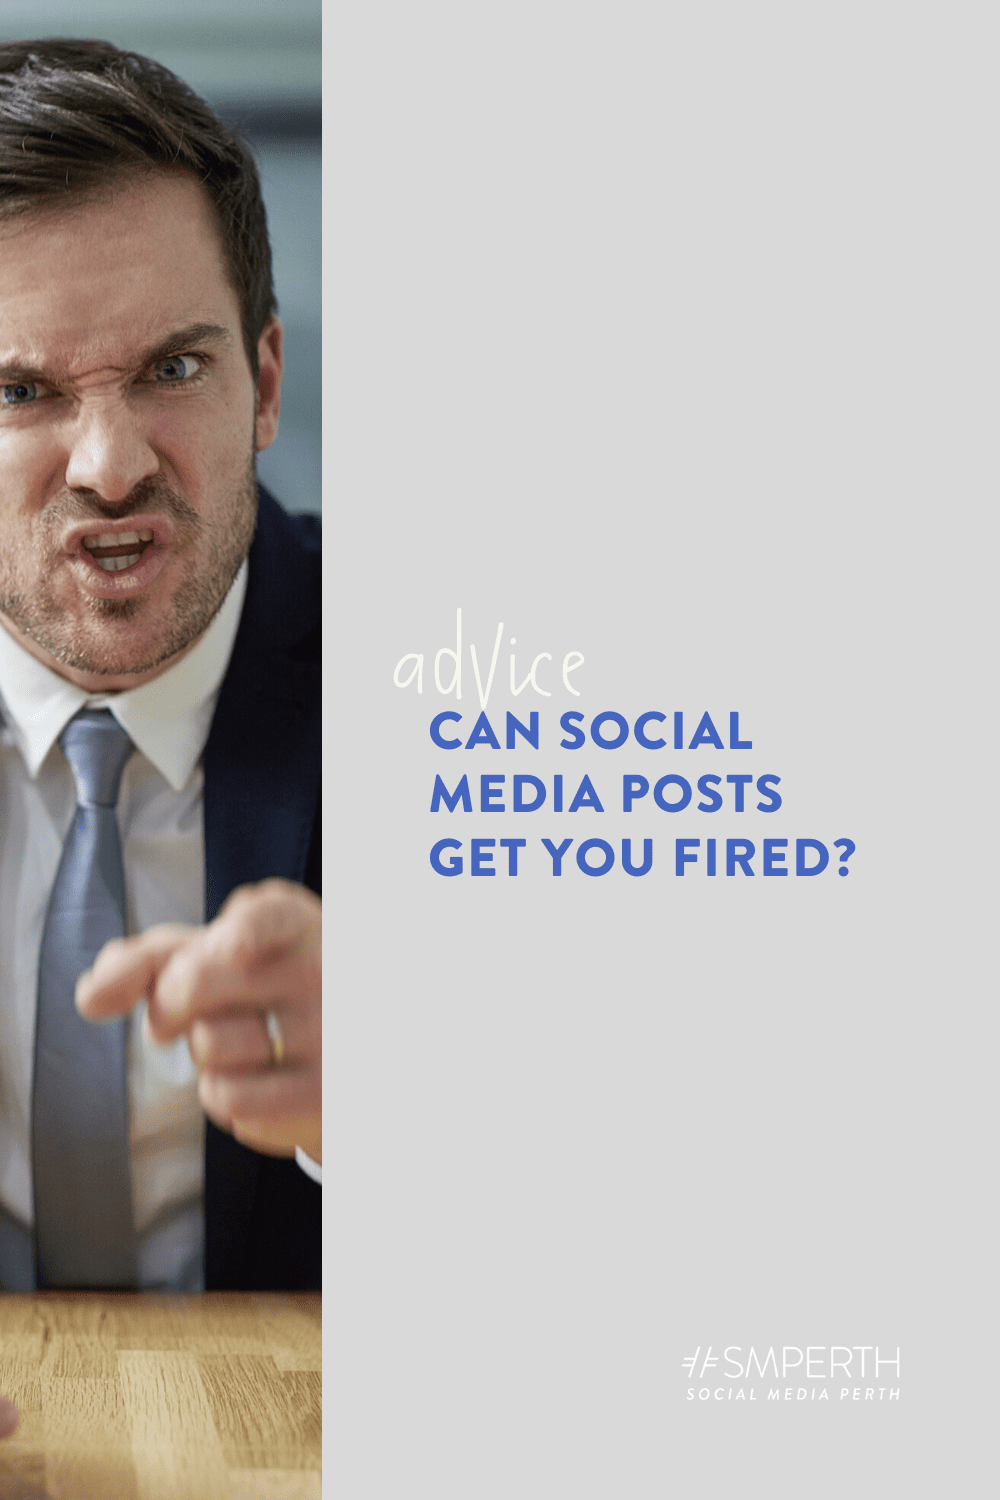 Can your social media posts get you fired? Here's what a lawyer says.